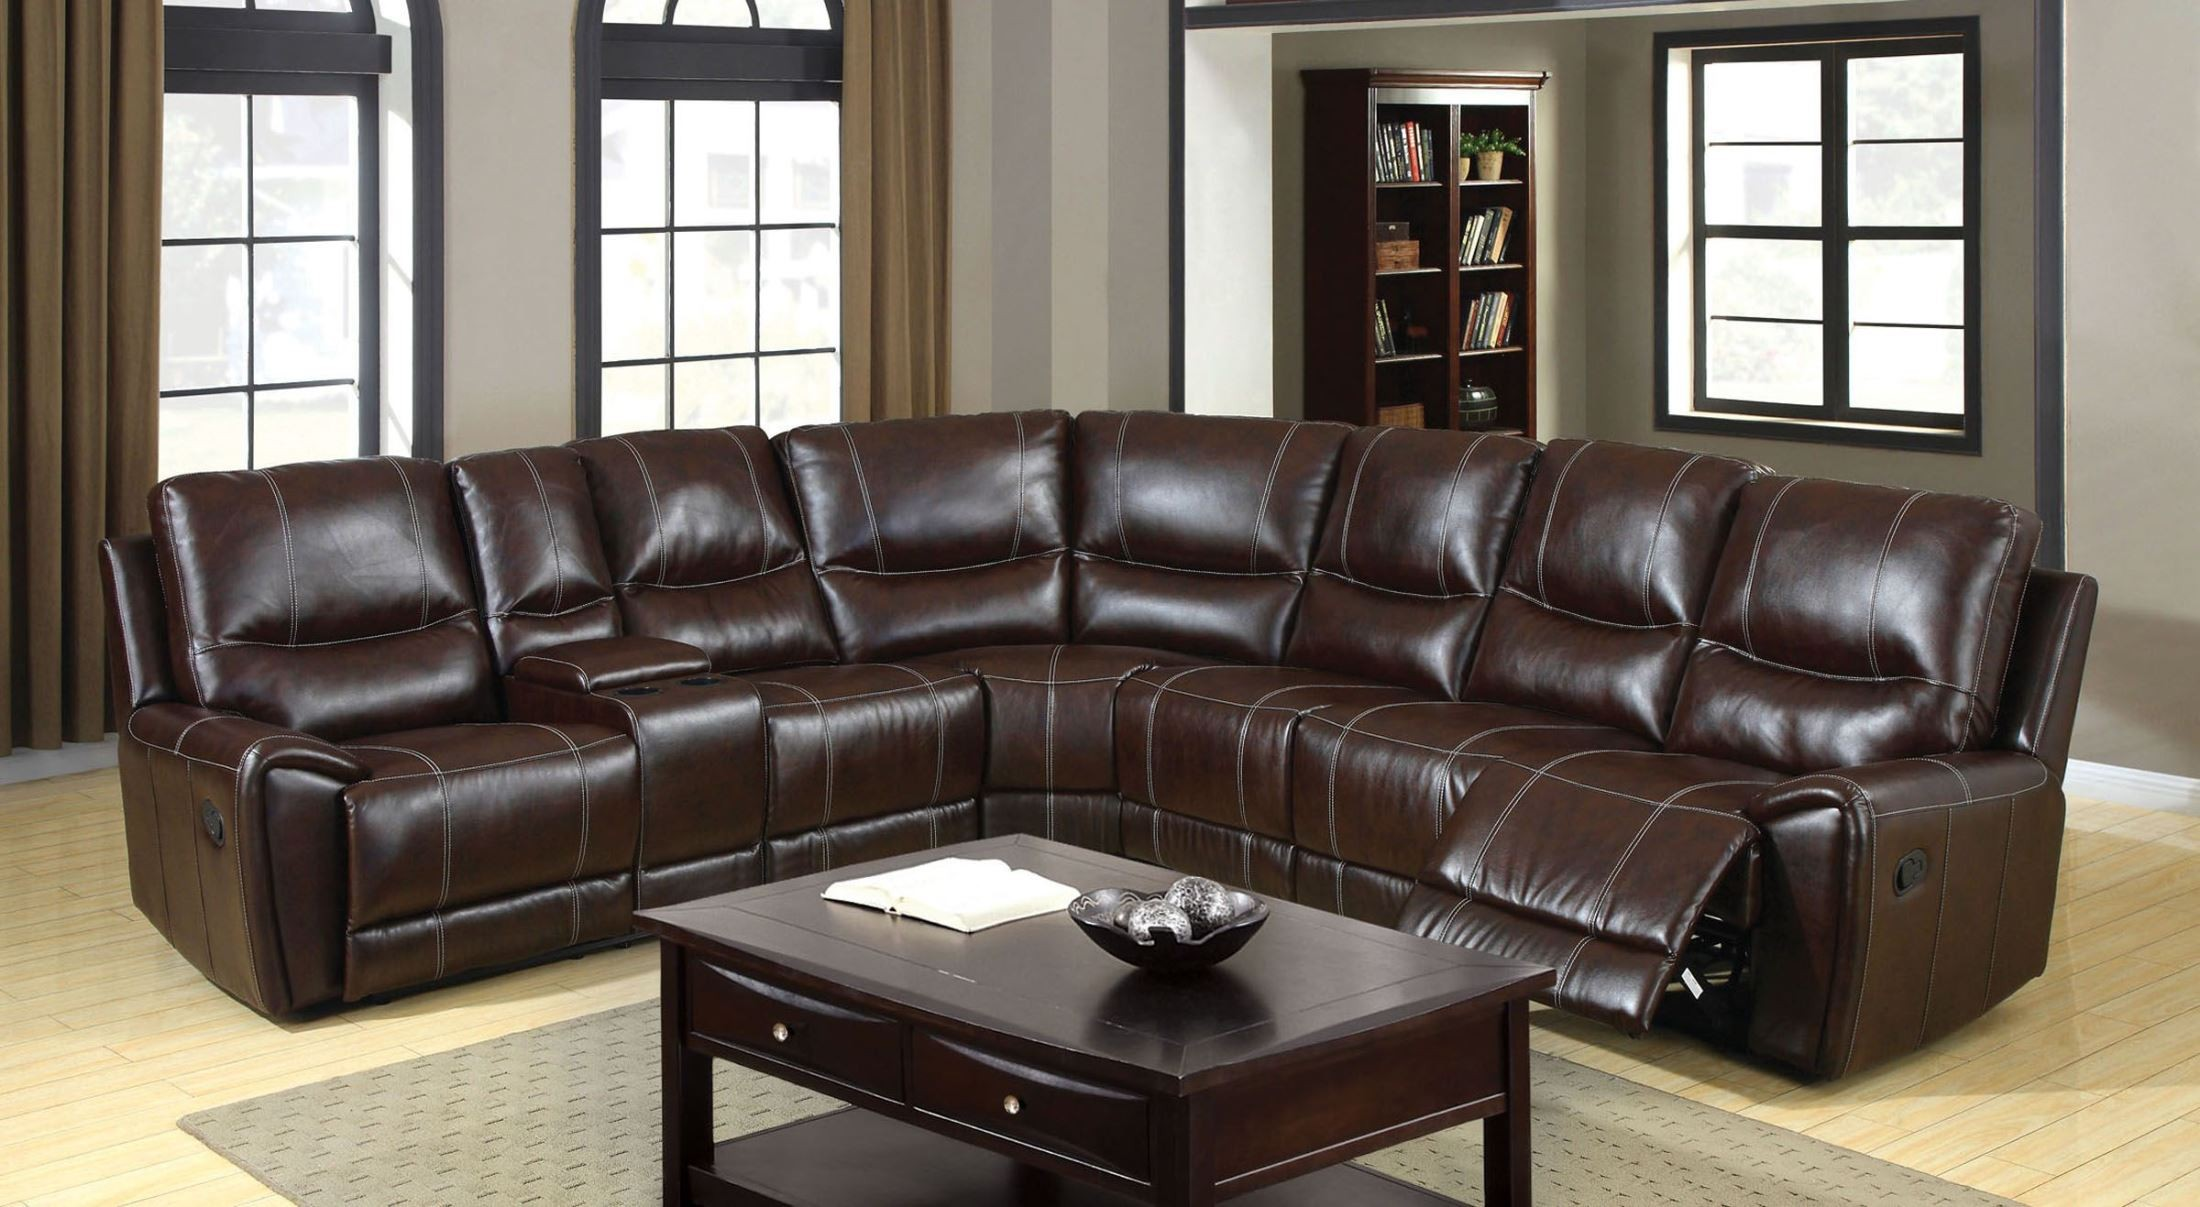 Keystone Brown Bonded Leather Match Reclining Sectional from